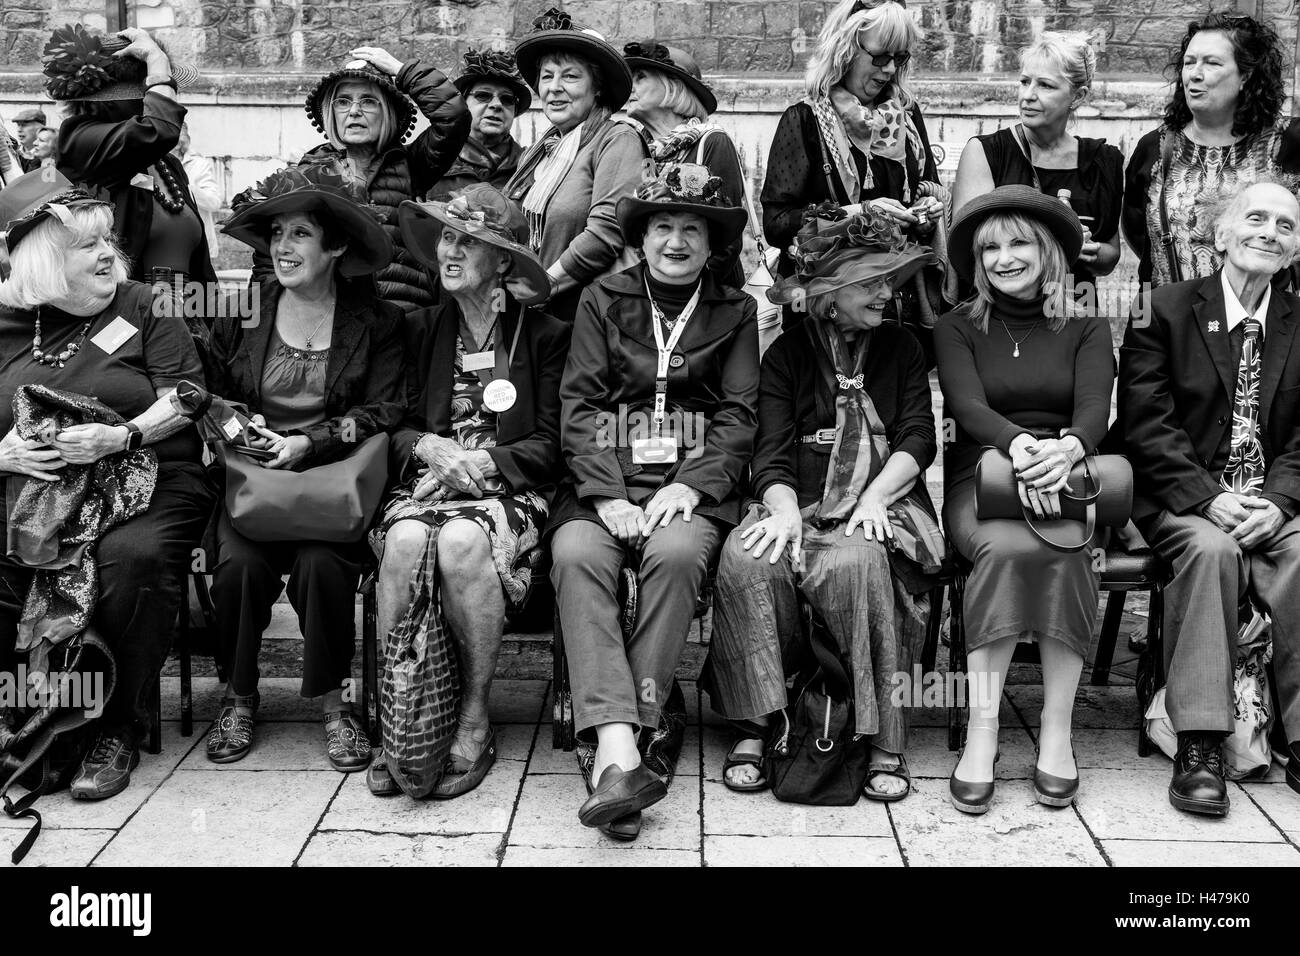 The London Red Hatters At The Pearly Kings and Queens' Harvest Festival, Held Annually At The Guildhall Yard, - Stock Image